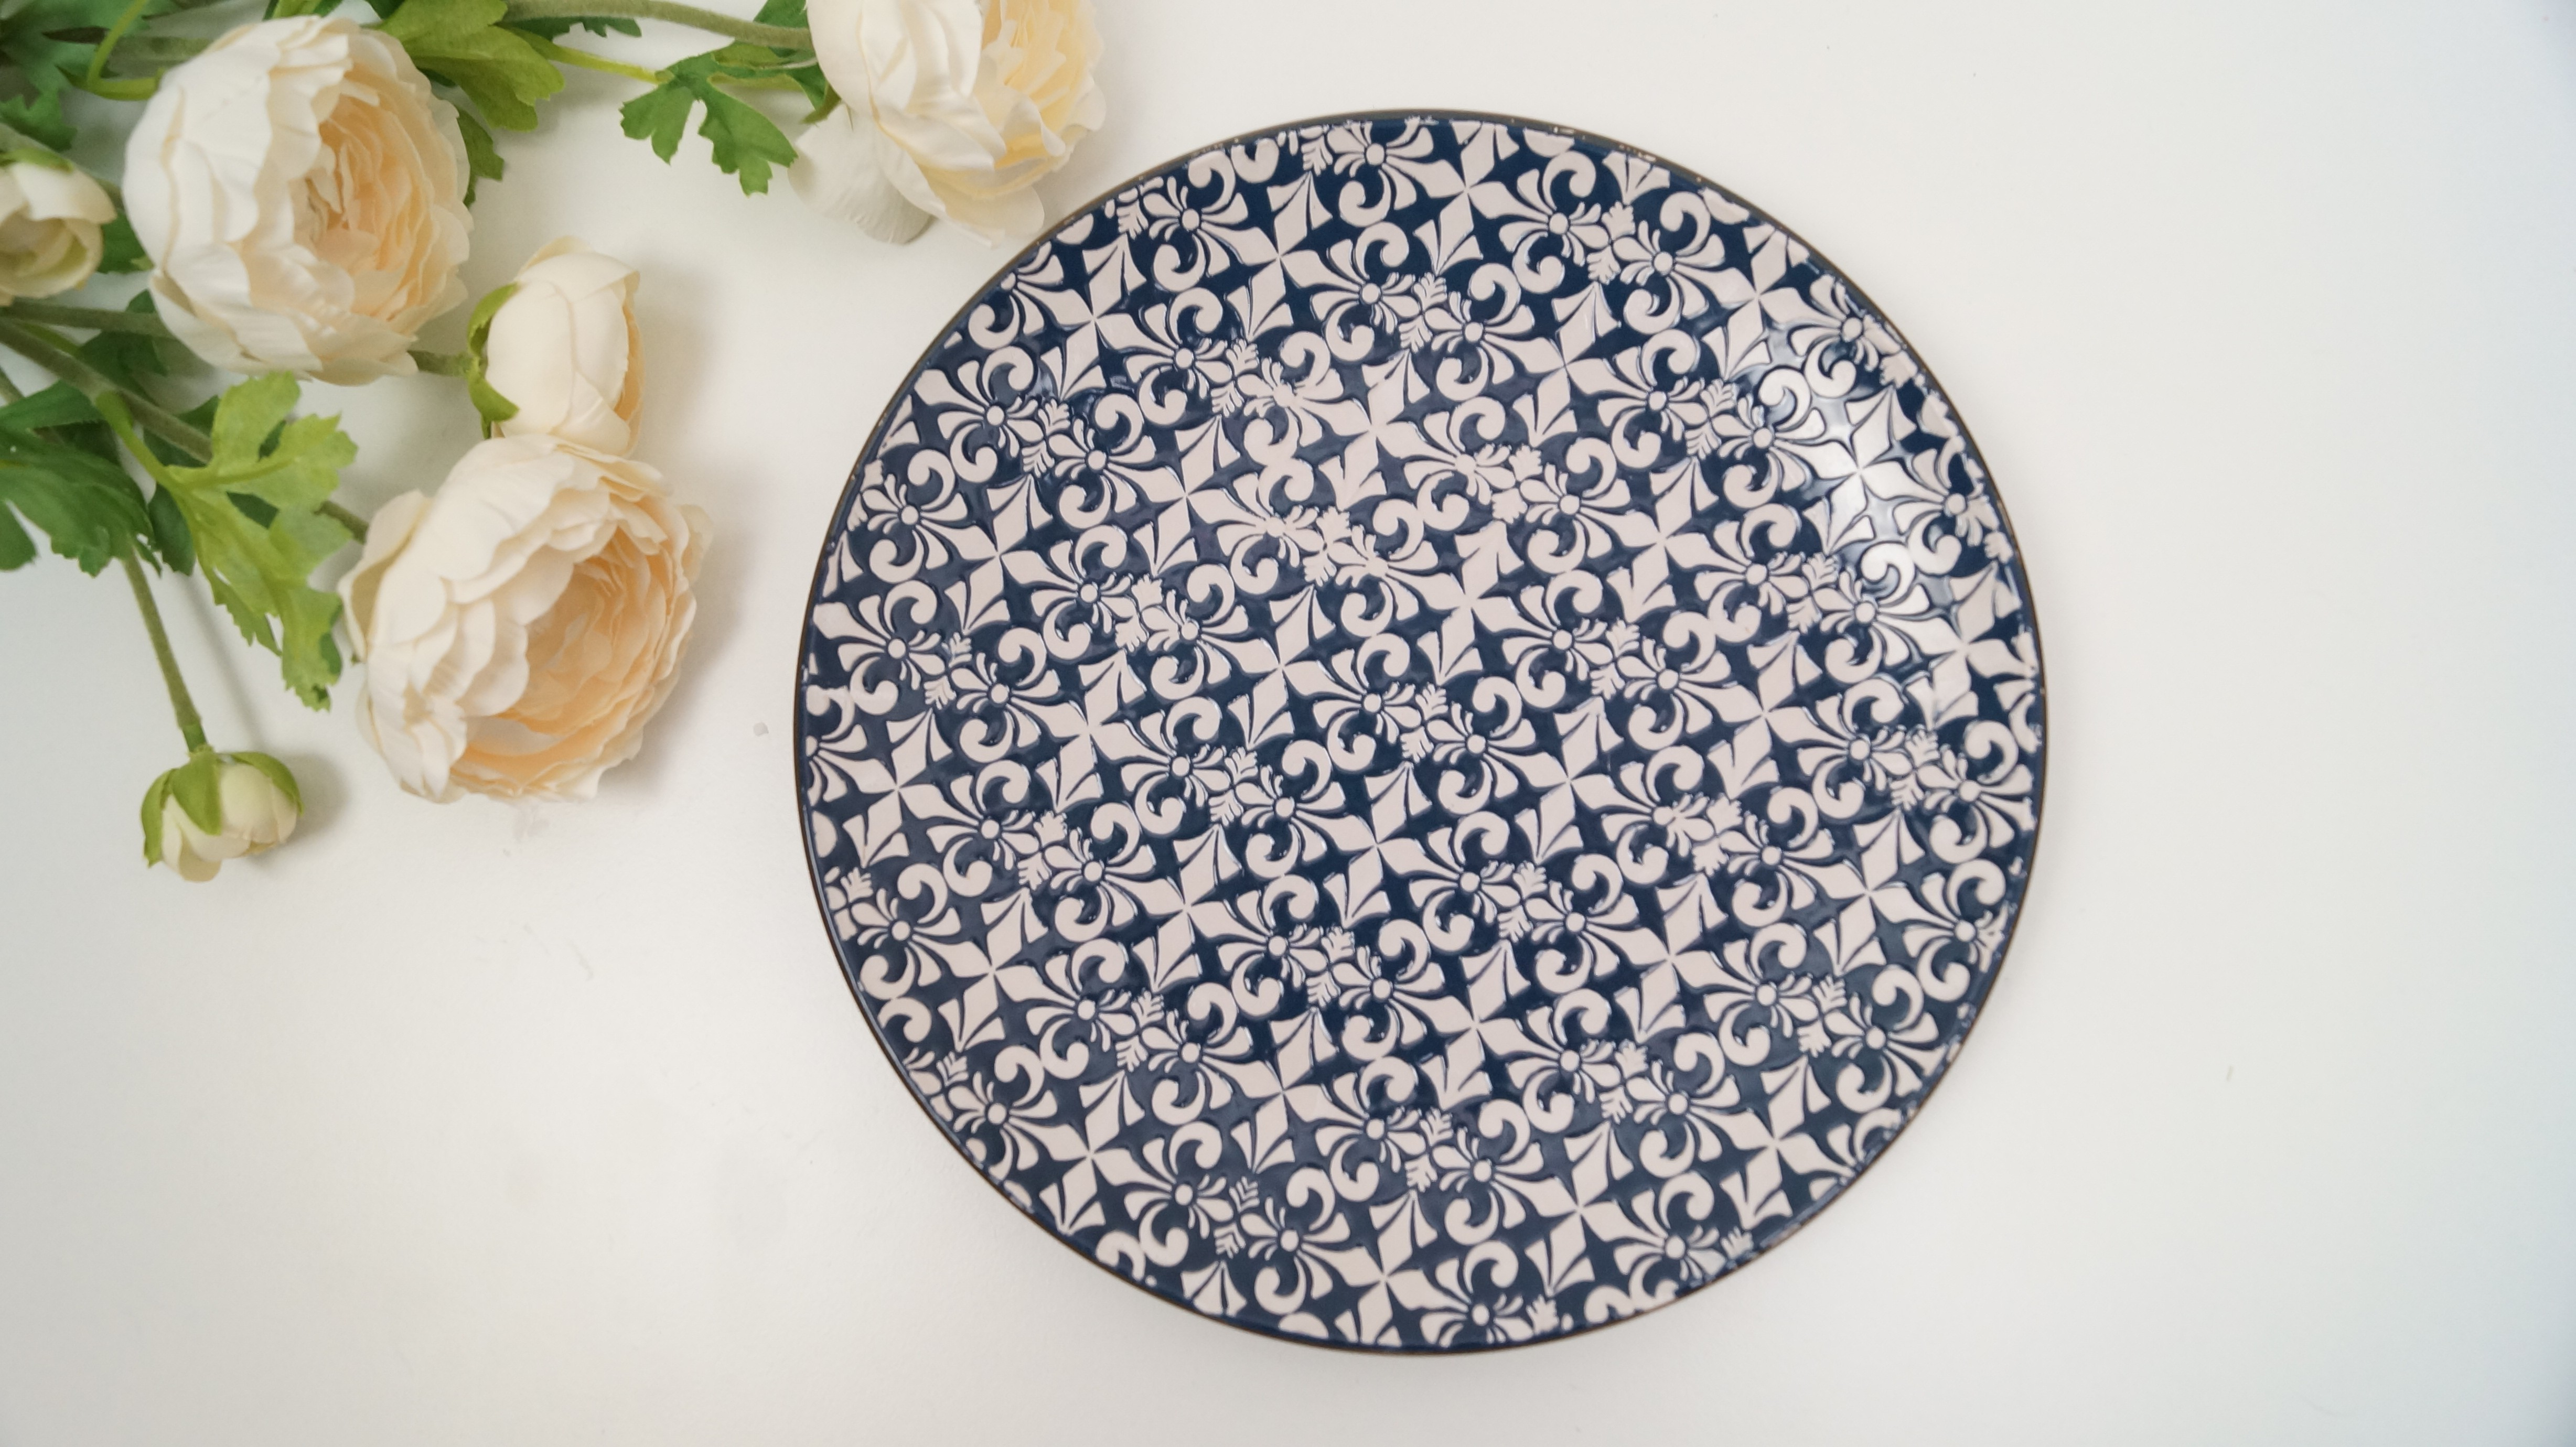 Decorative Dinner Plates Brilliant Stylish Mosaic Blue And White Decorative Dinner Plates Set Of 2 Inspiration